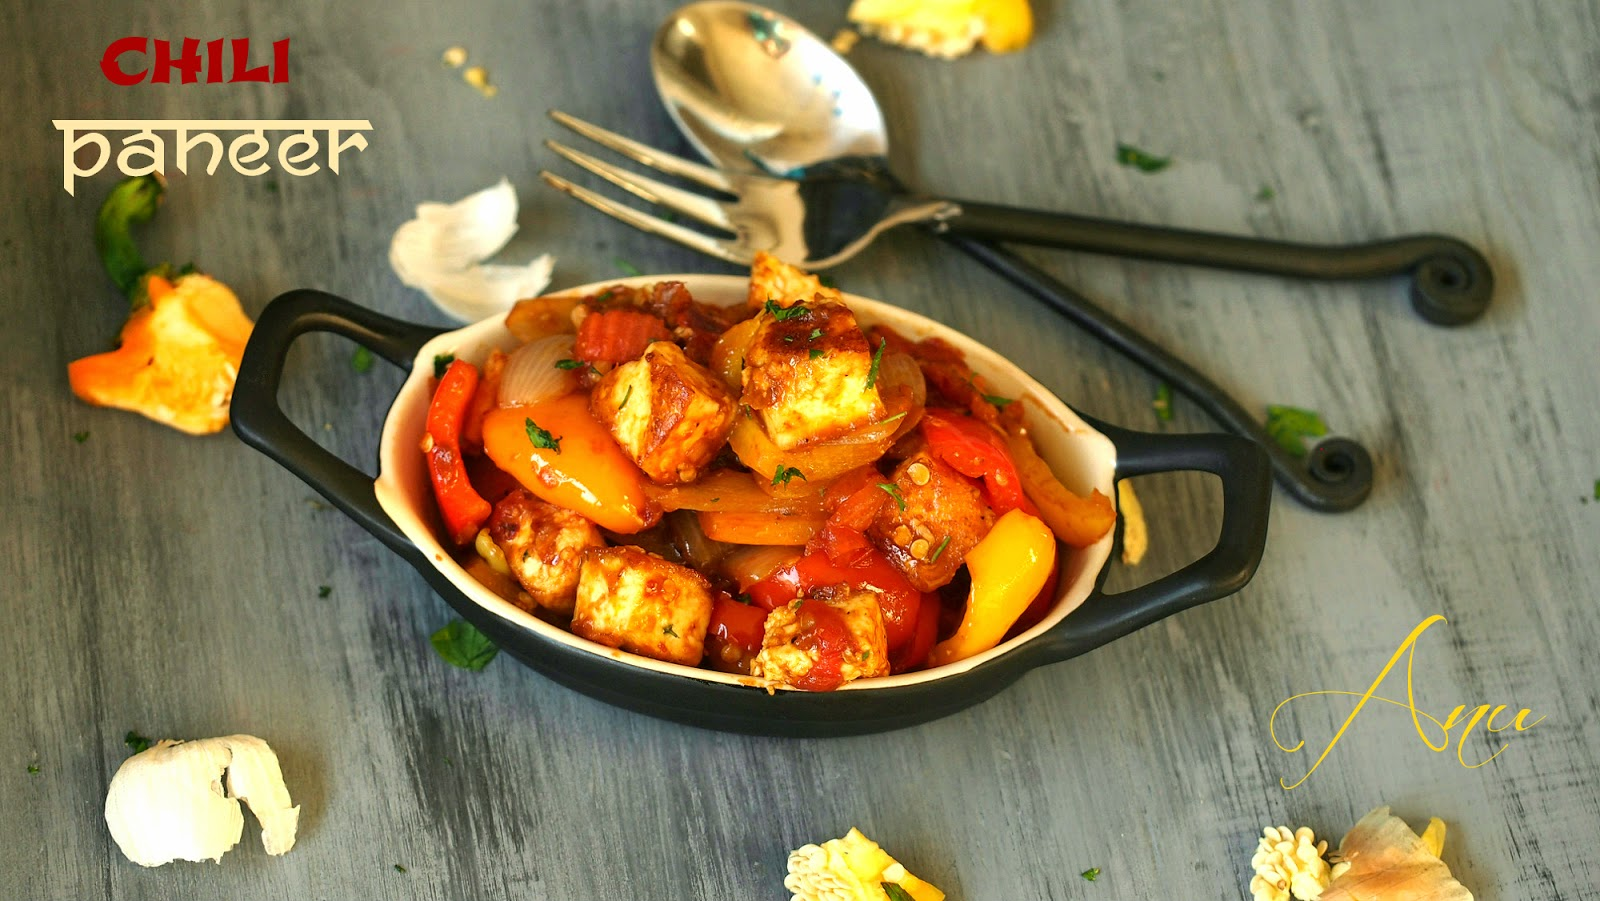 chili paneer / bell pepper cottage cheese